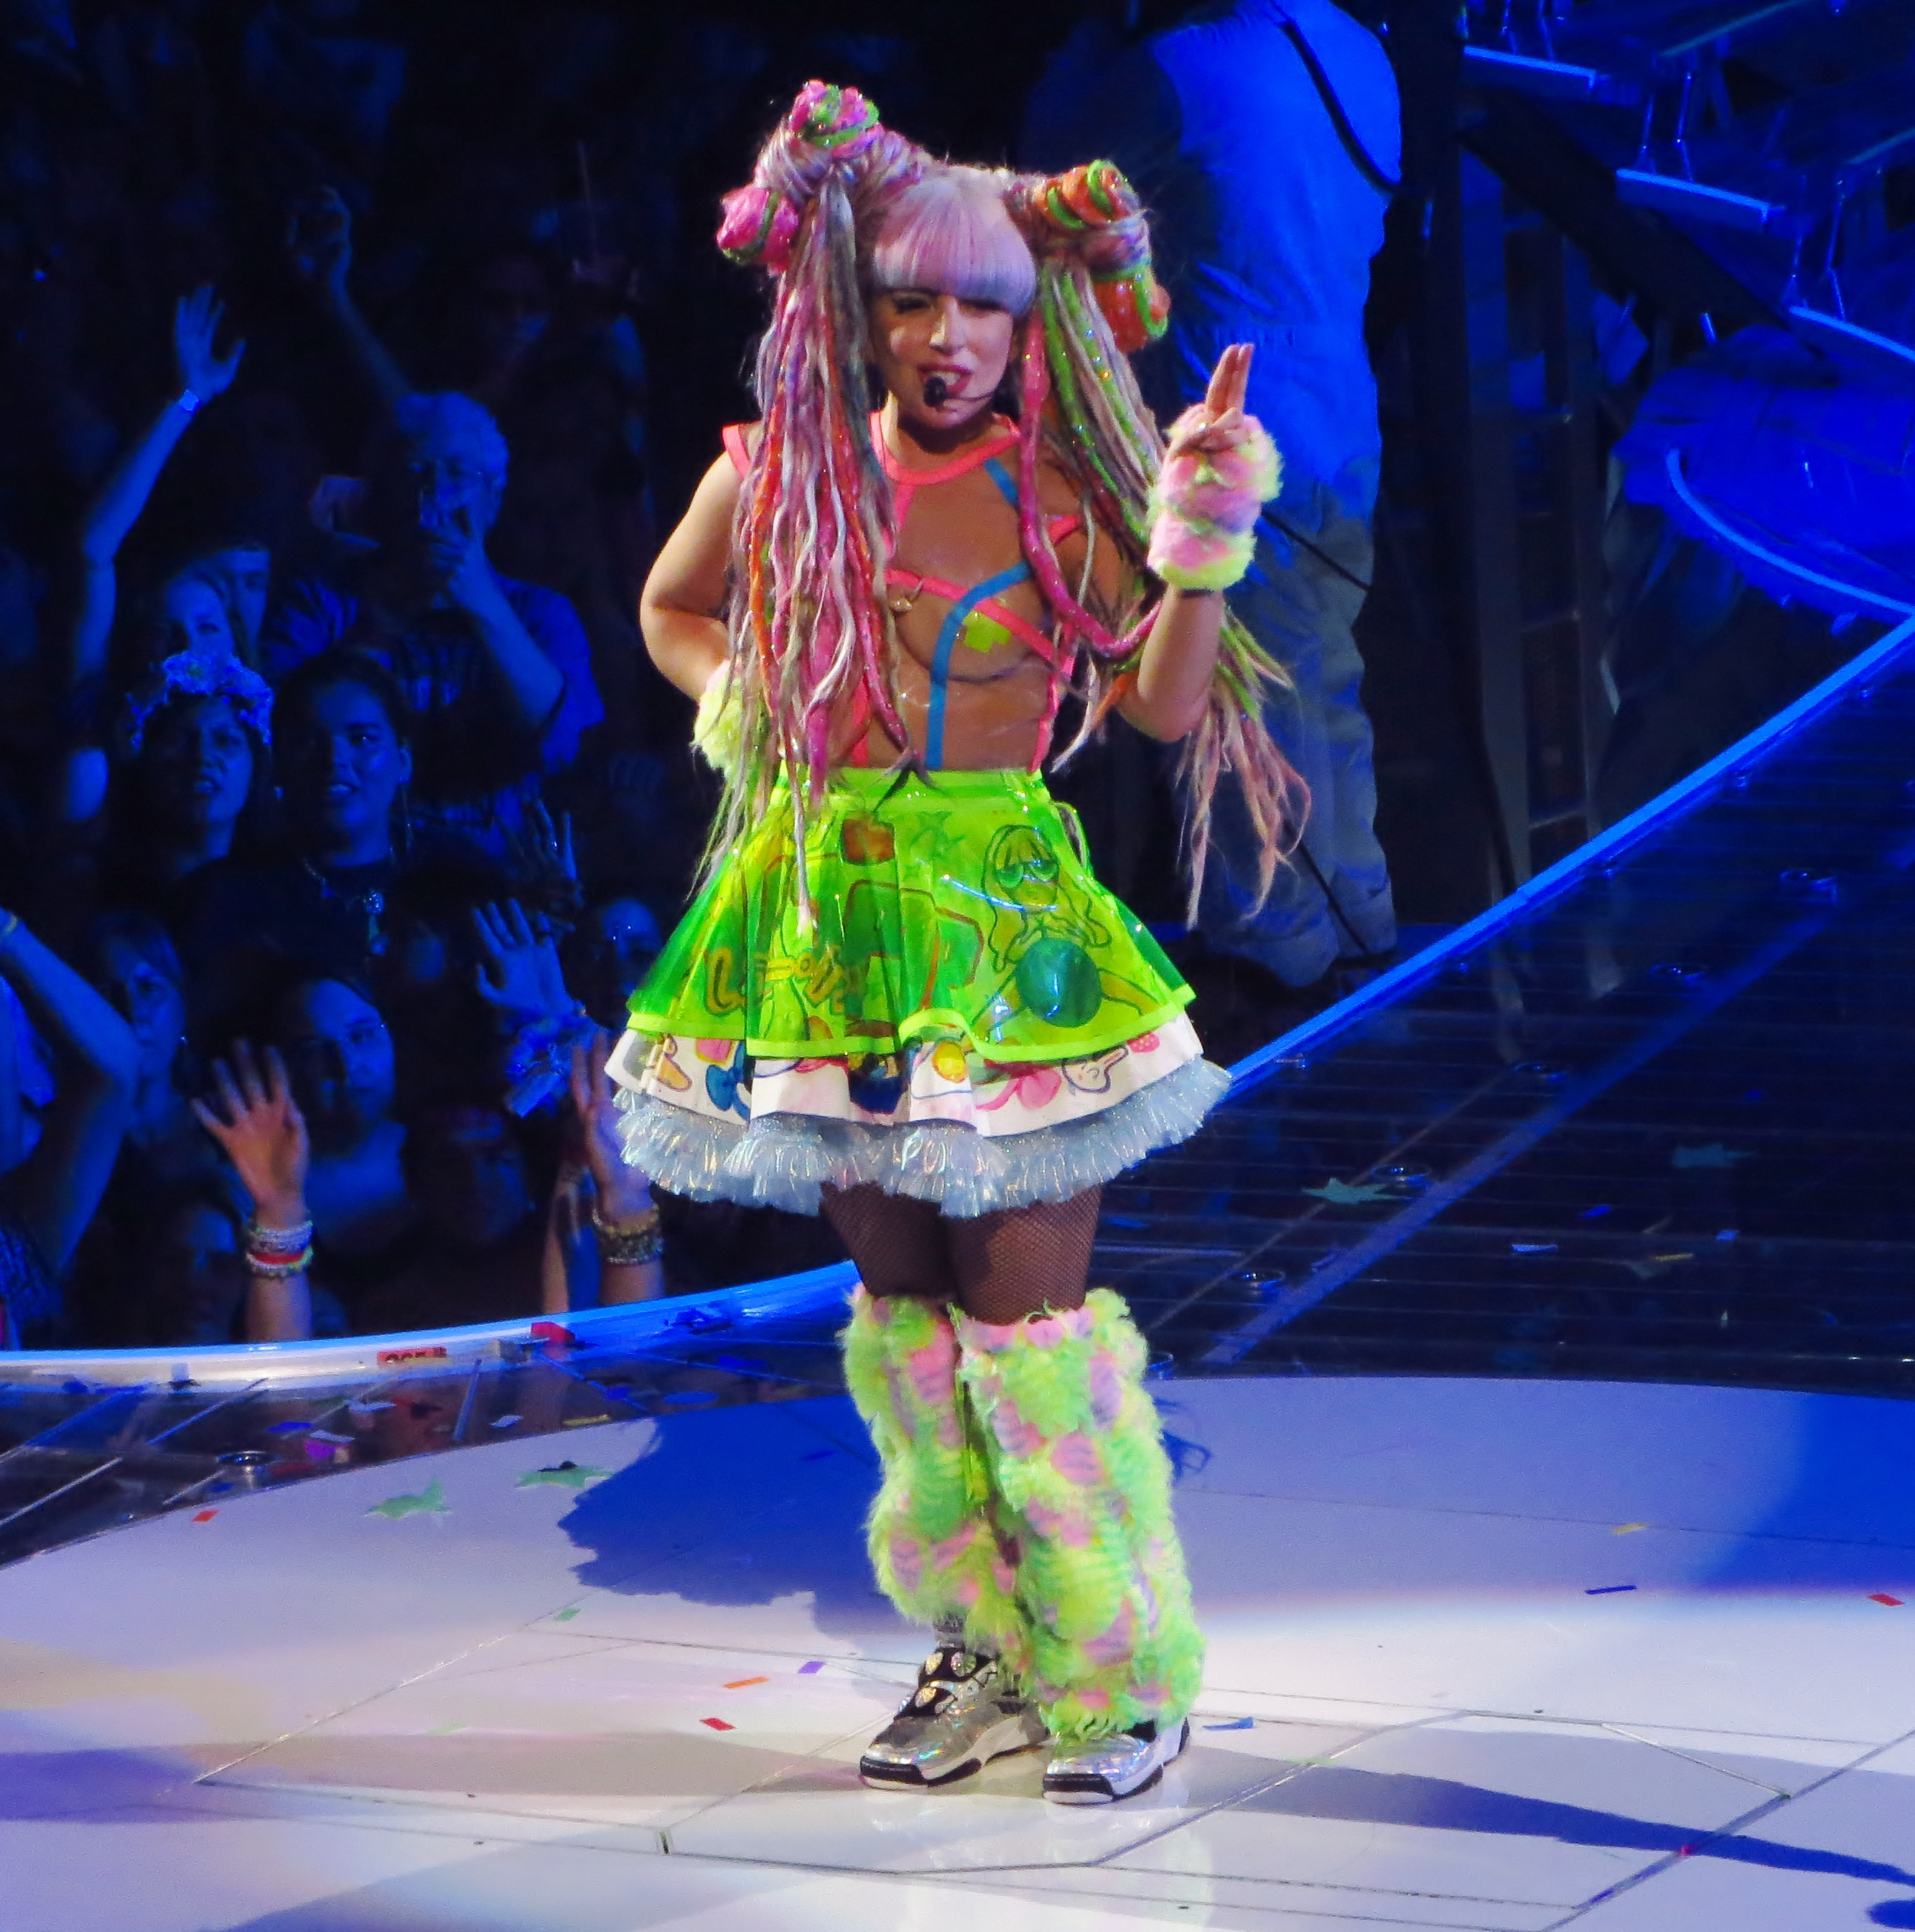 File:Lady Gaga, ARTPOP Ball Tour, Bell Center, Montréal, 2 ... Lady Gaga Tour